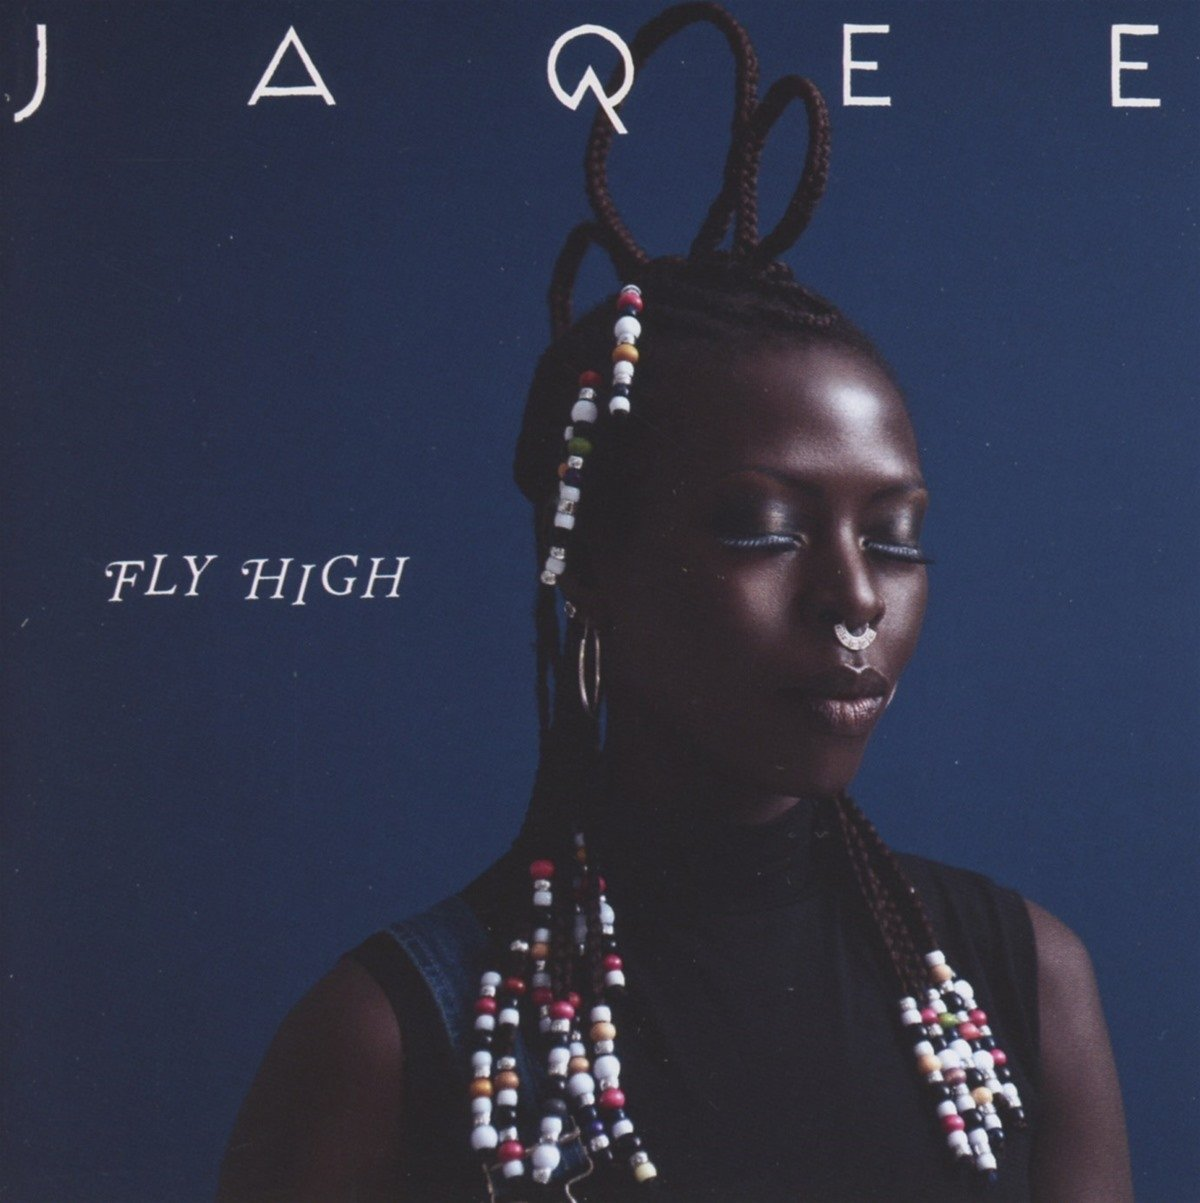 Jaqee - Fly High CD